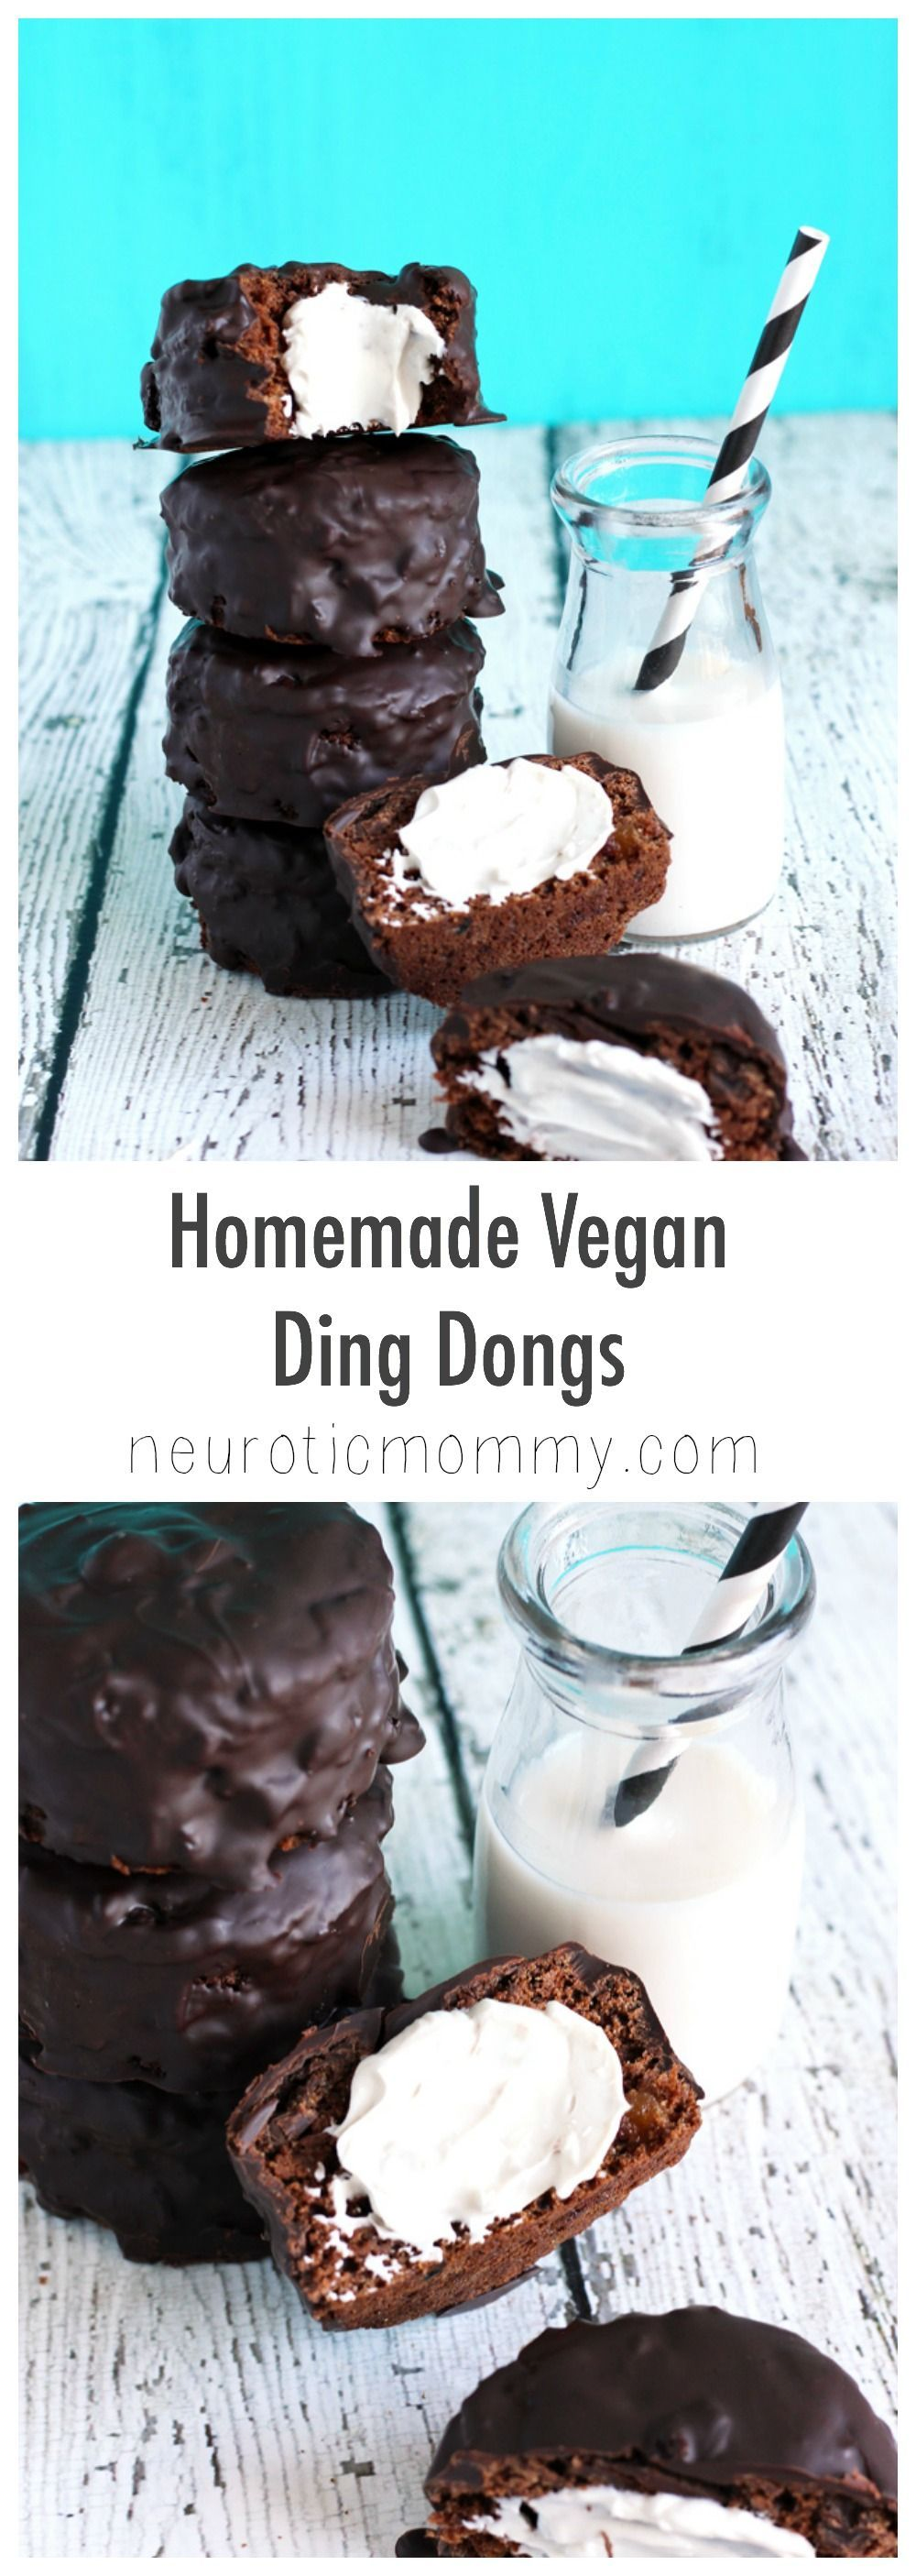 Homemade Vegan Ding Dongs Outstanding Homemade Vegan Ding Dongs - Chocolate cakes with a cream filling and a dark chocolate coating. Not only are they vegan, they're good for you. Outstanding Homemade Vegan Ding Dongs - Chocolate cakes with a cream filling and a dark chocolate coating. Not only are they vegan, they're good for you.